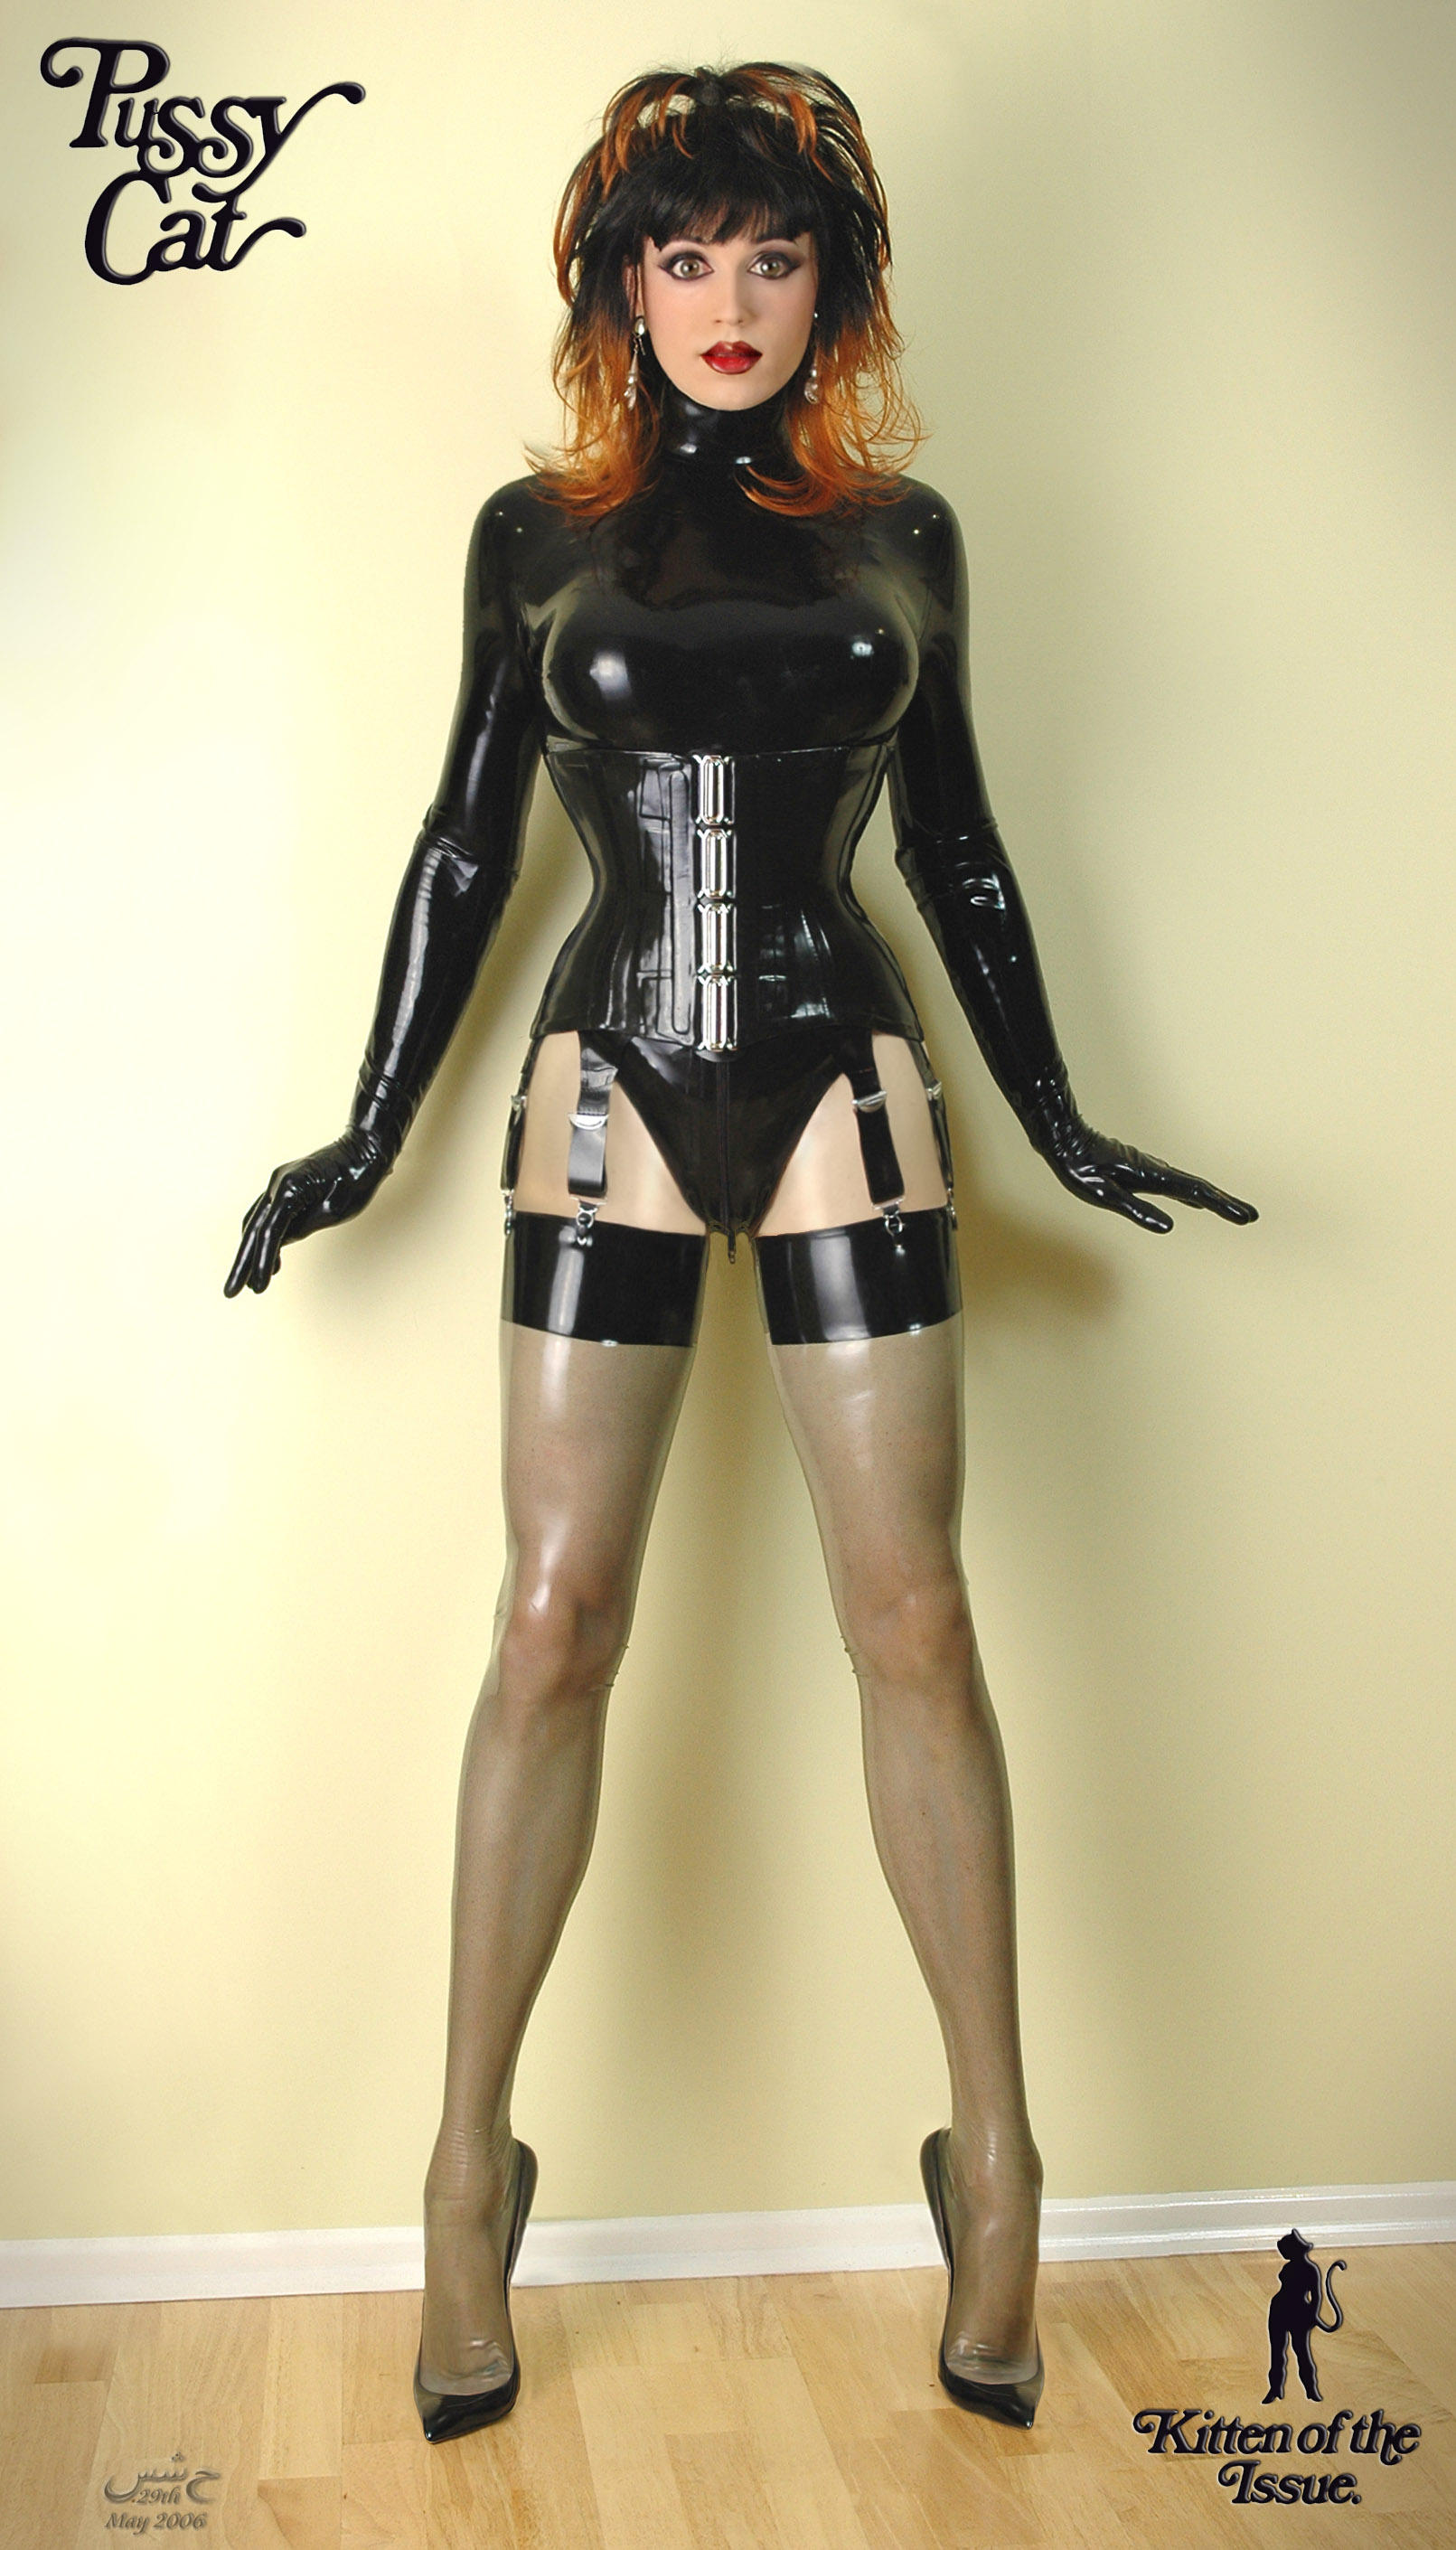 Forced rubber doll